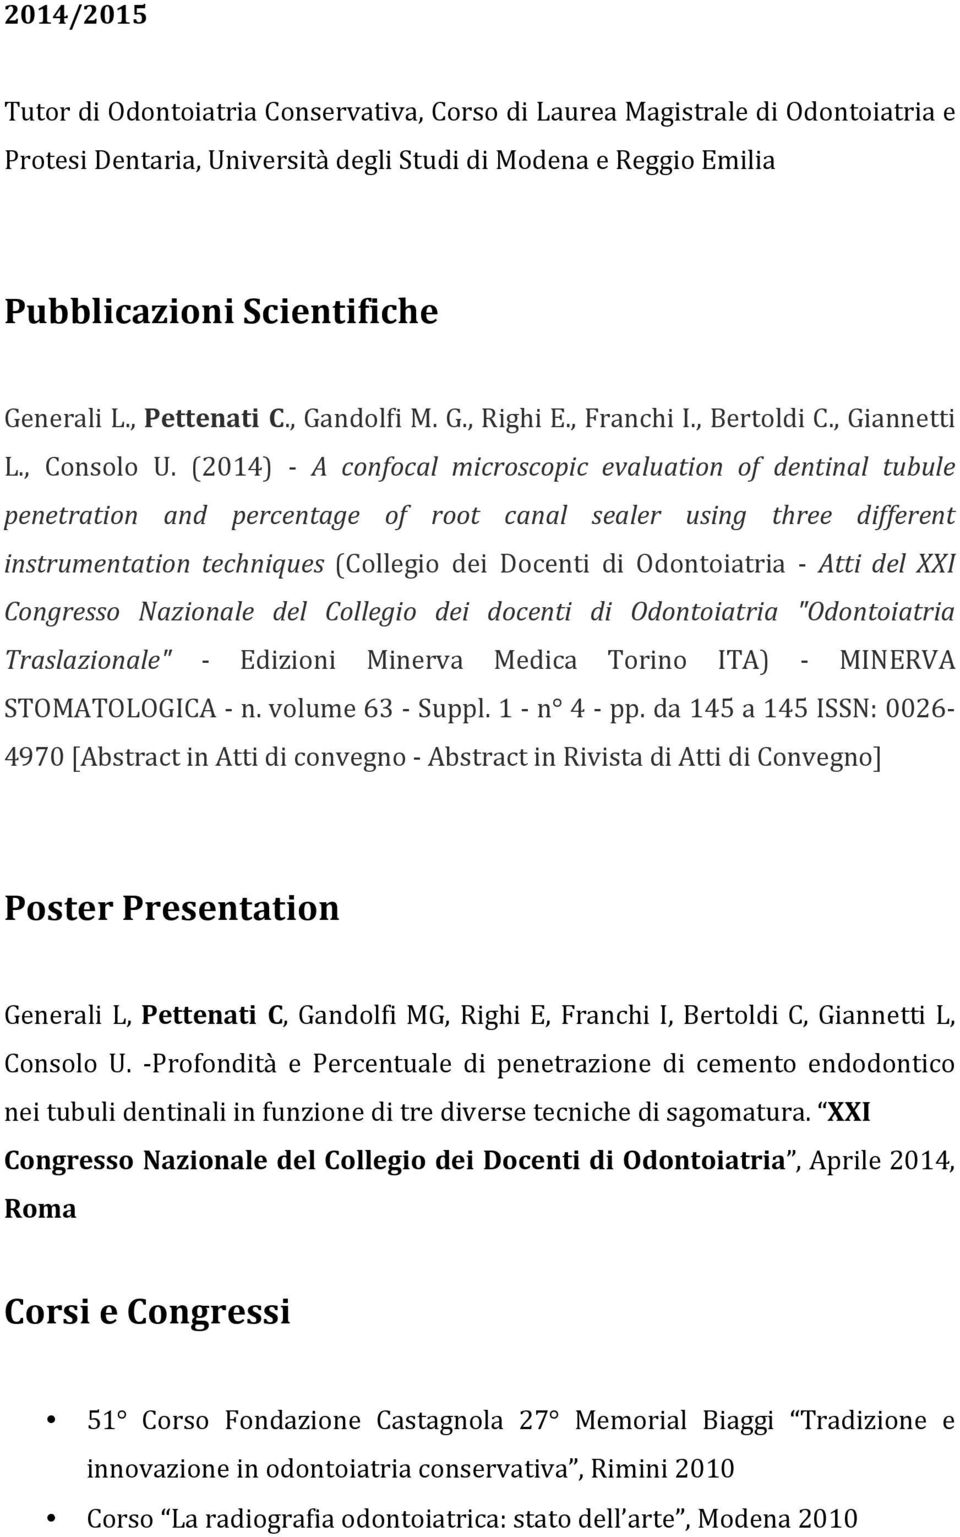 (2014) - A confocal microscopic evaluation of dentinal tubule penetration and percentage of root canal sealer using three different instrumentation techniques (Collegio dei Docenti di Odontoiatria -